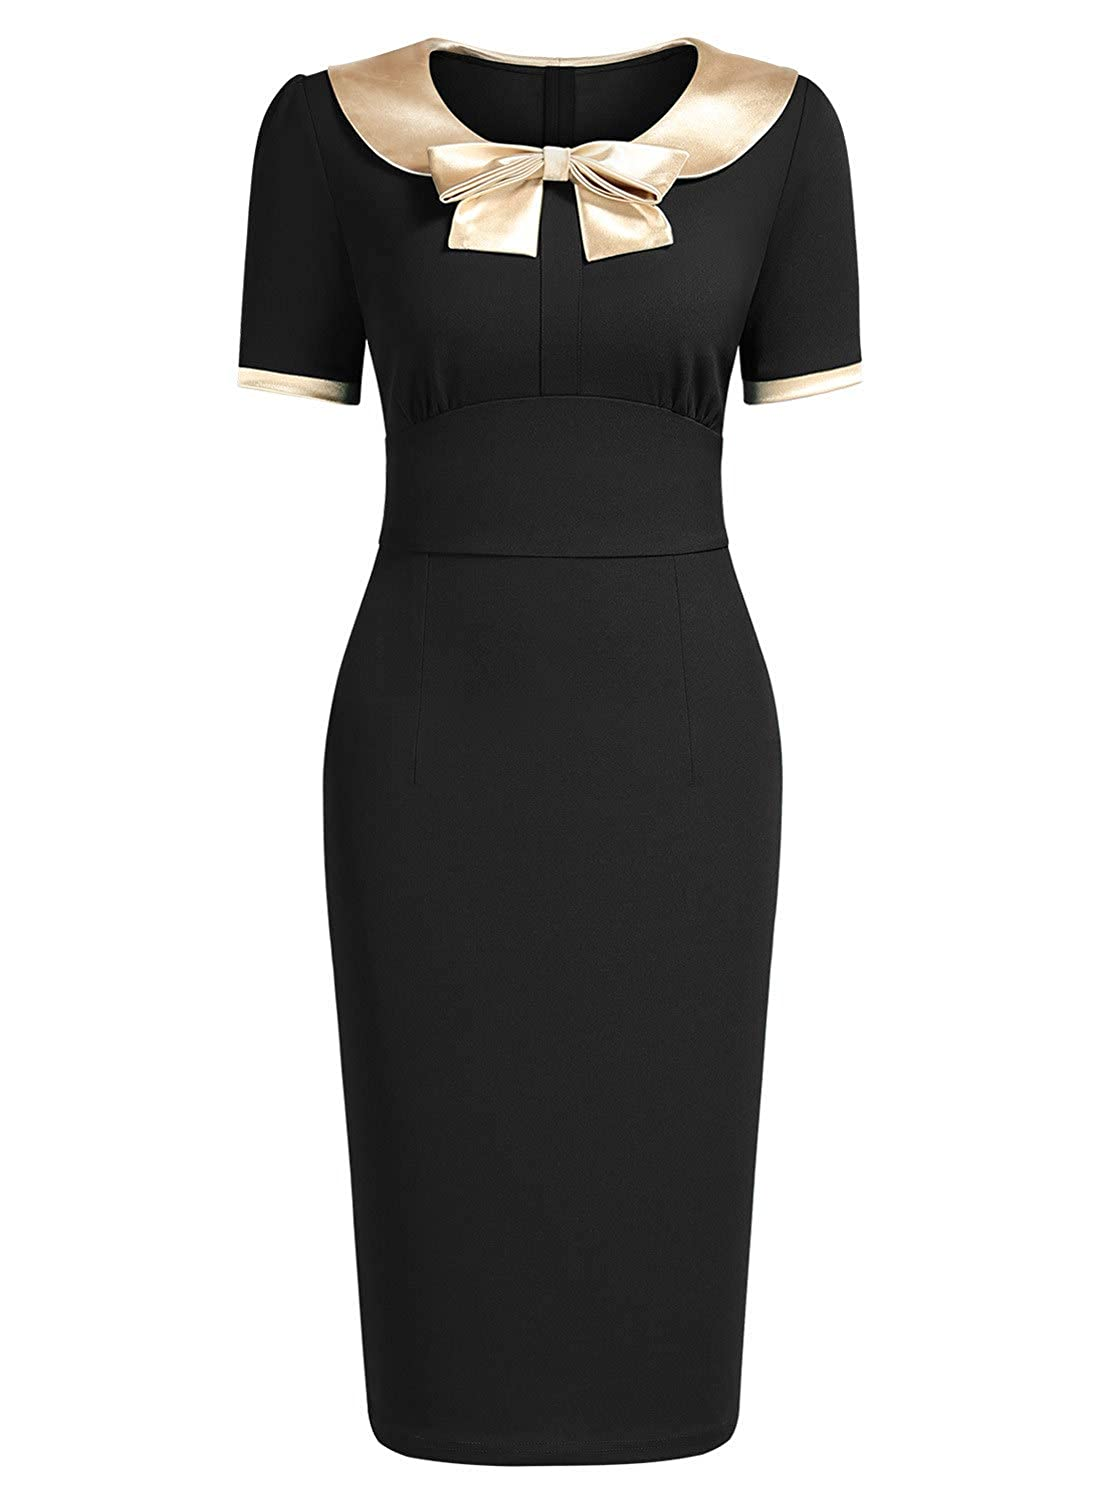 1940s Dress Styles AISIZE Women 1940s Vintage Cute Golden Bow Bodycon Wiggle Dress $34.99 AT vintagedancer.com